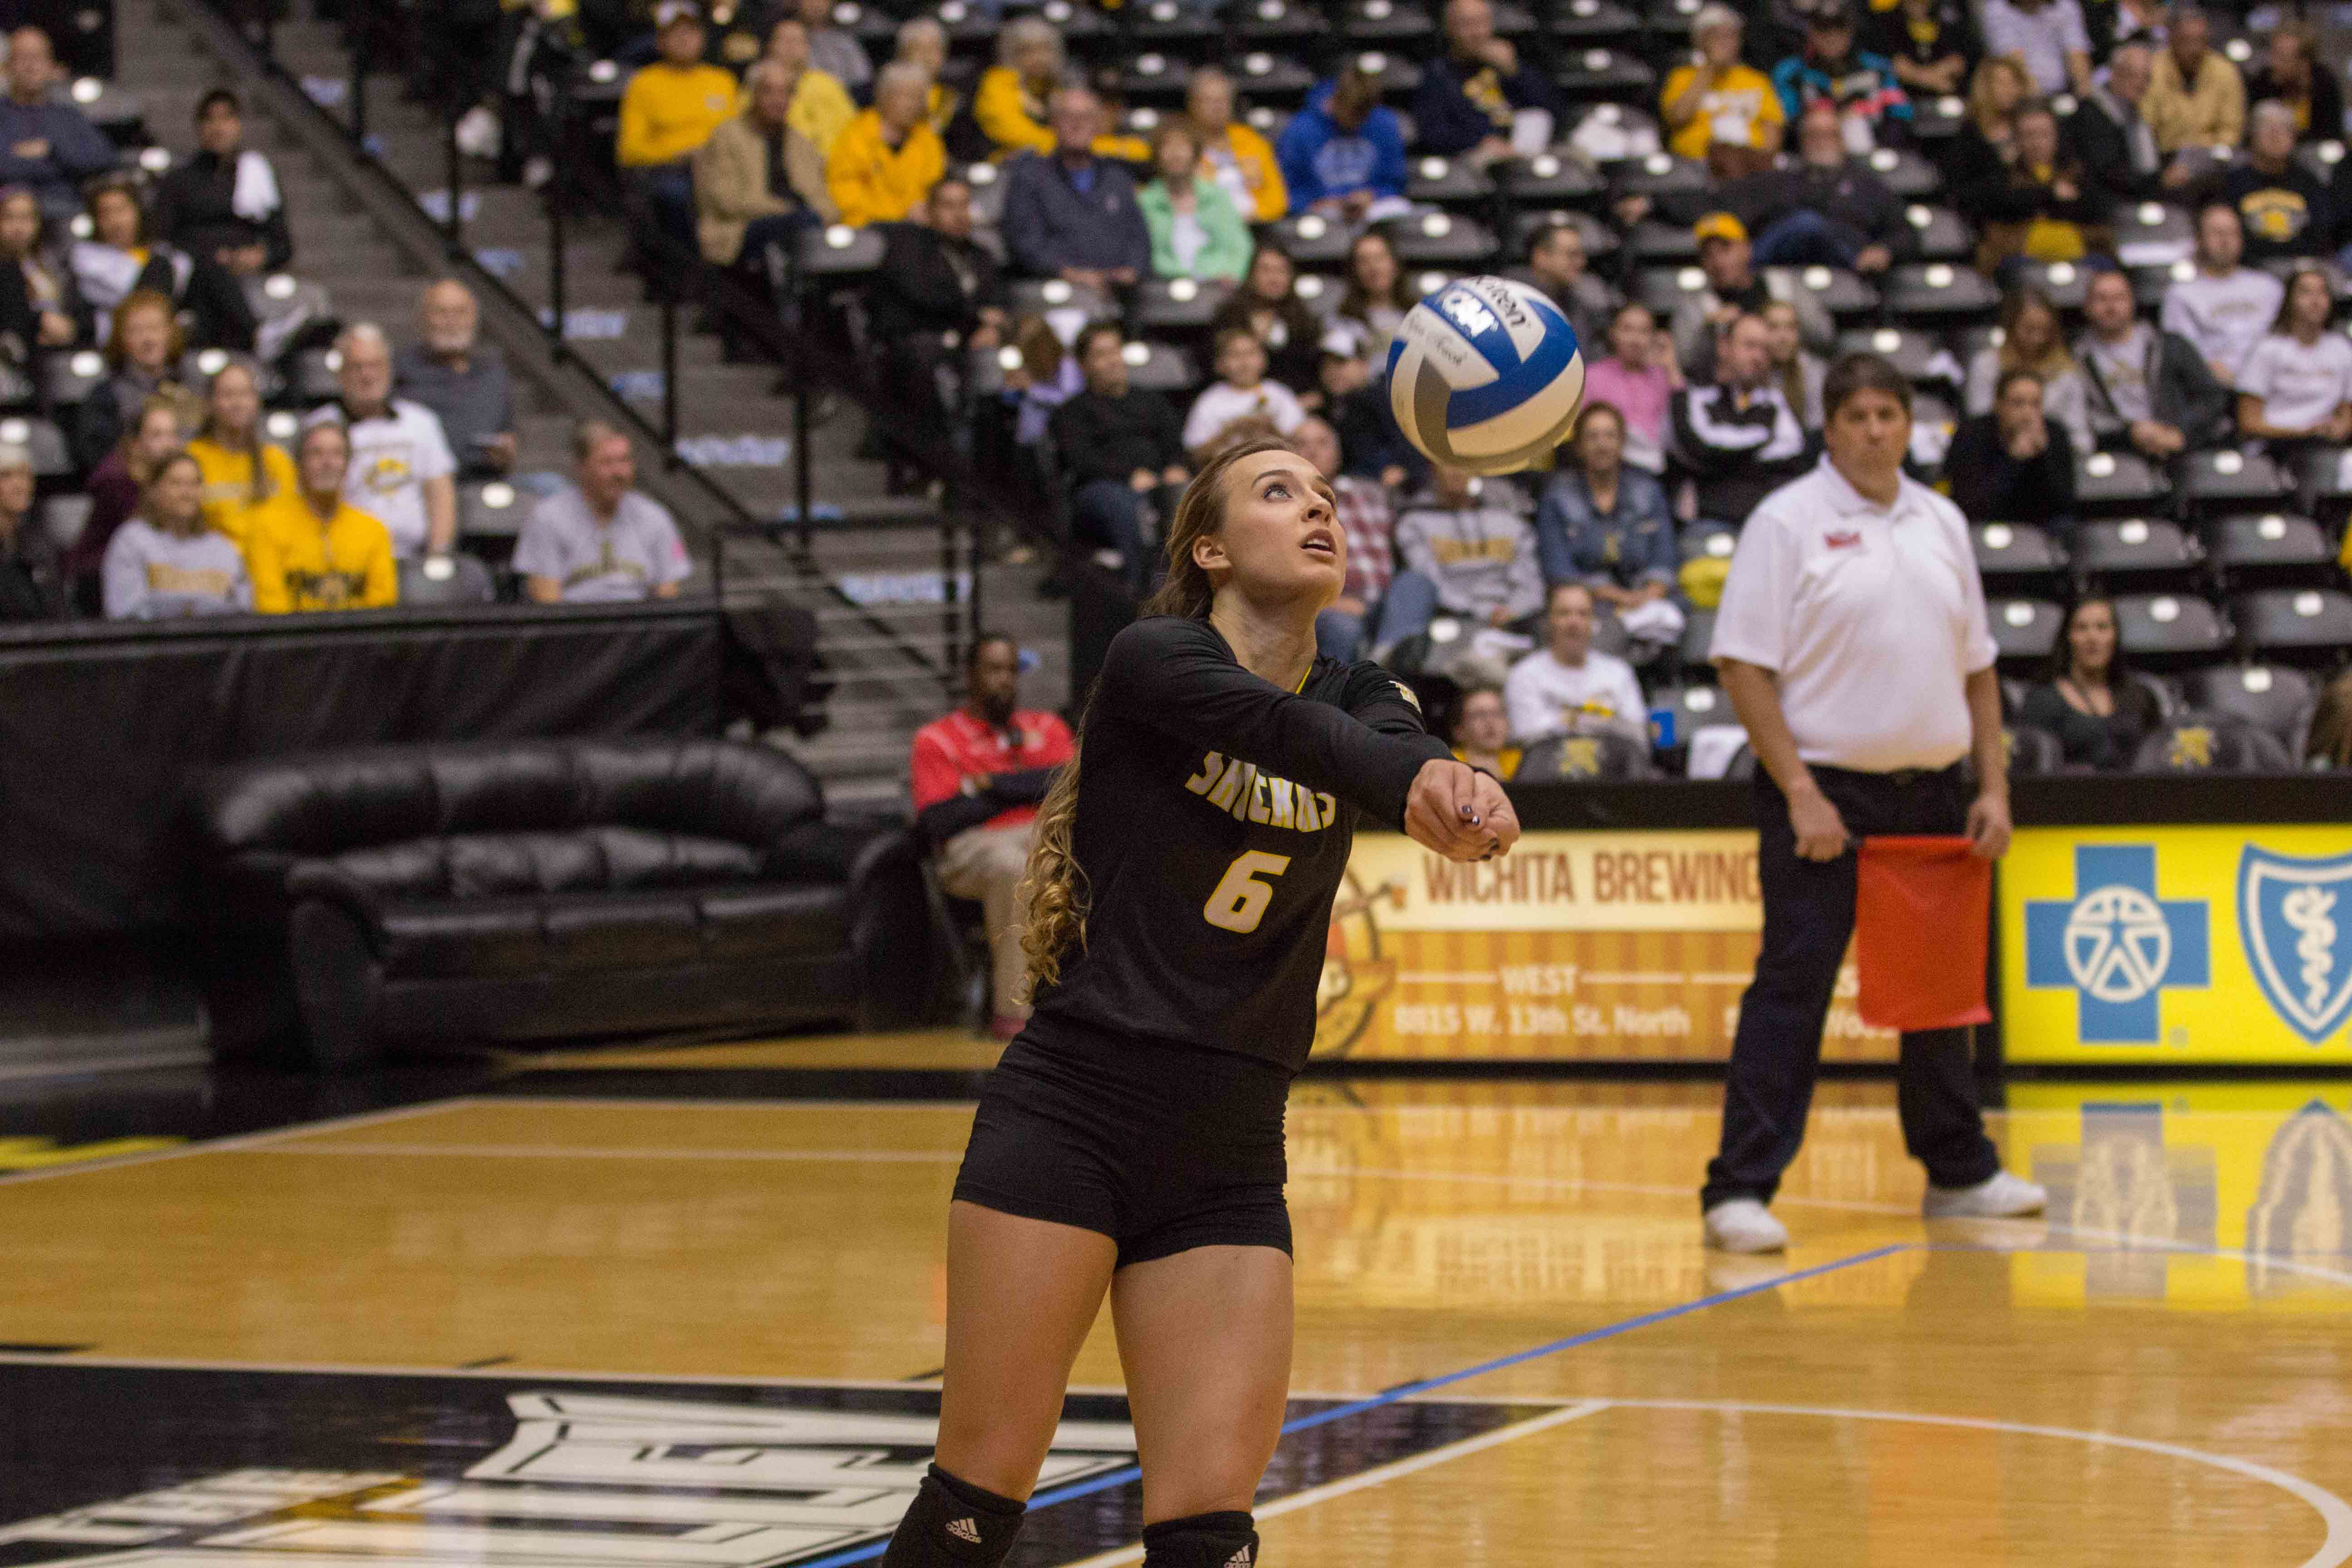 Wichita State senior Dani Mostrom (6) goes to return the ball to Indiana State. Mostrom had a career-high of 31 digs on Friday.